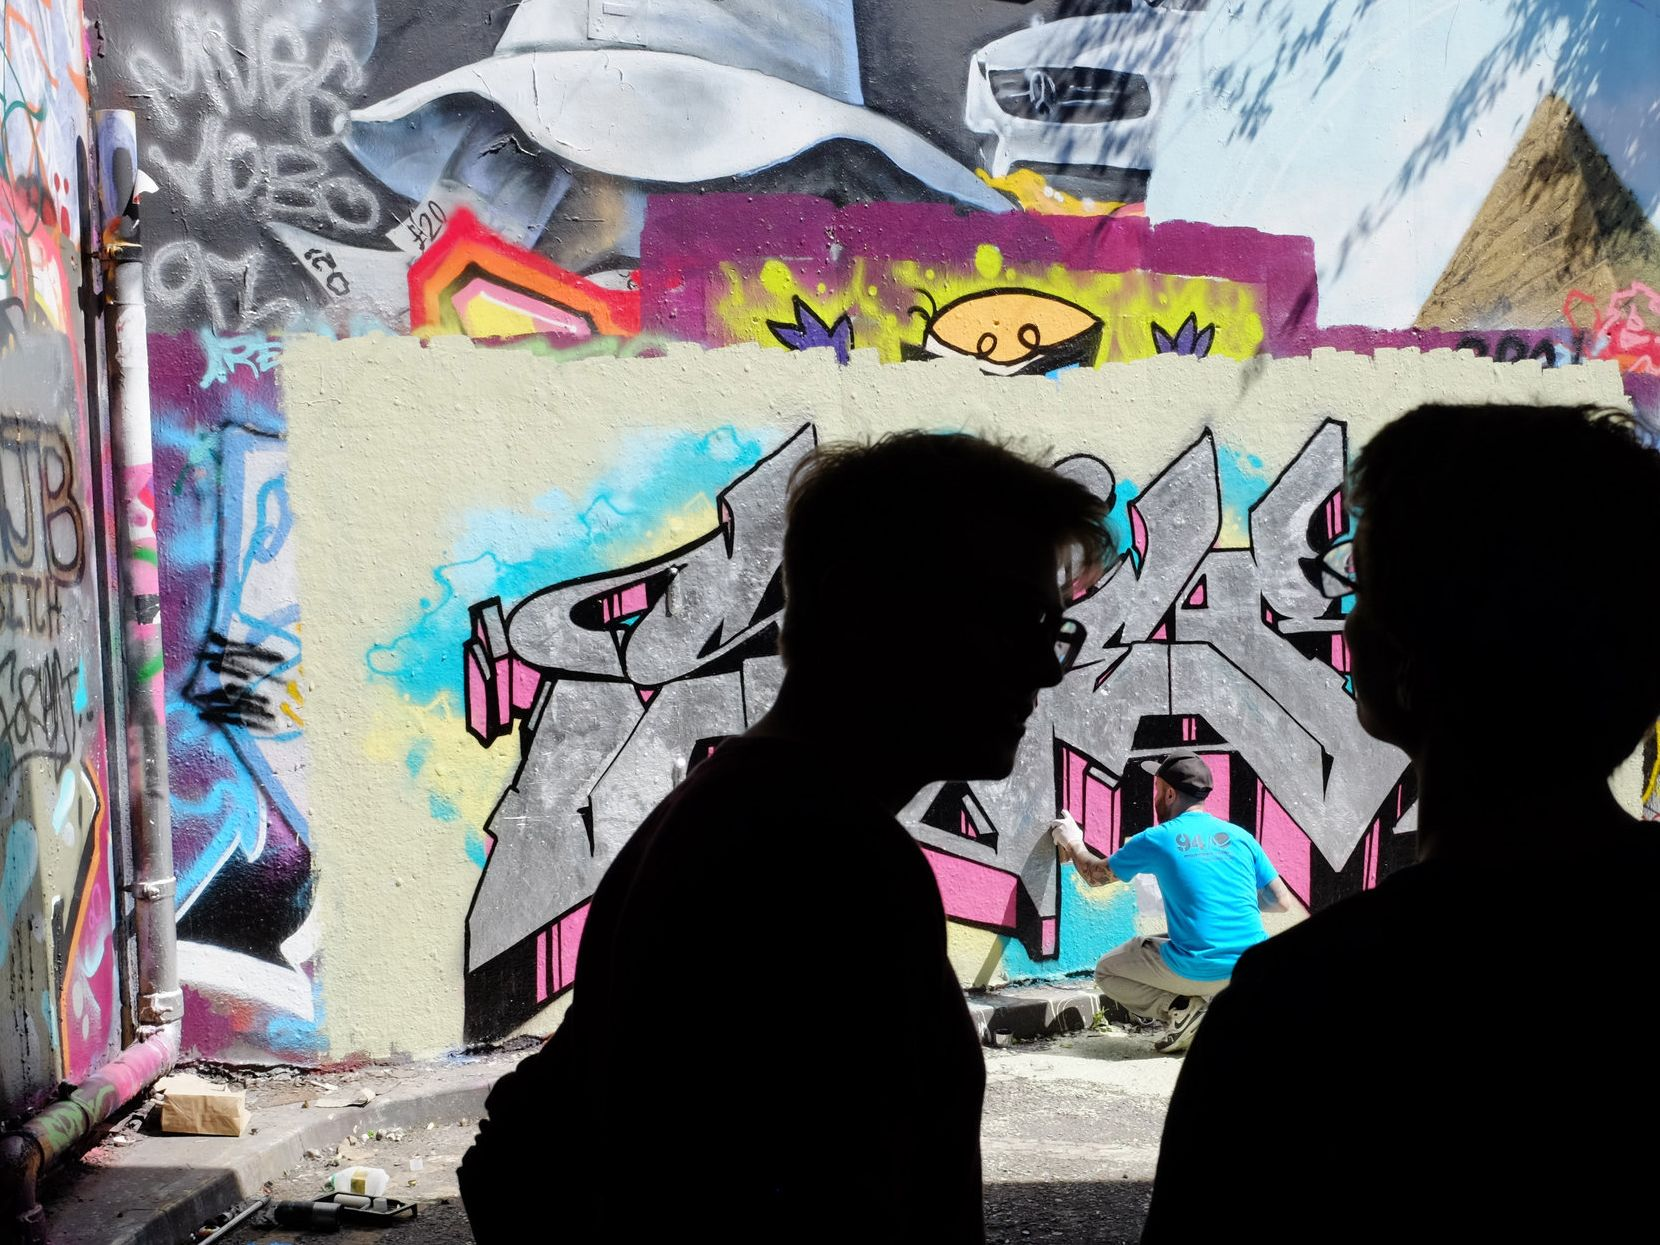 Two people watch a graffiti artist create work on an inner-city wall.